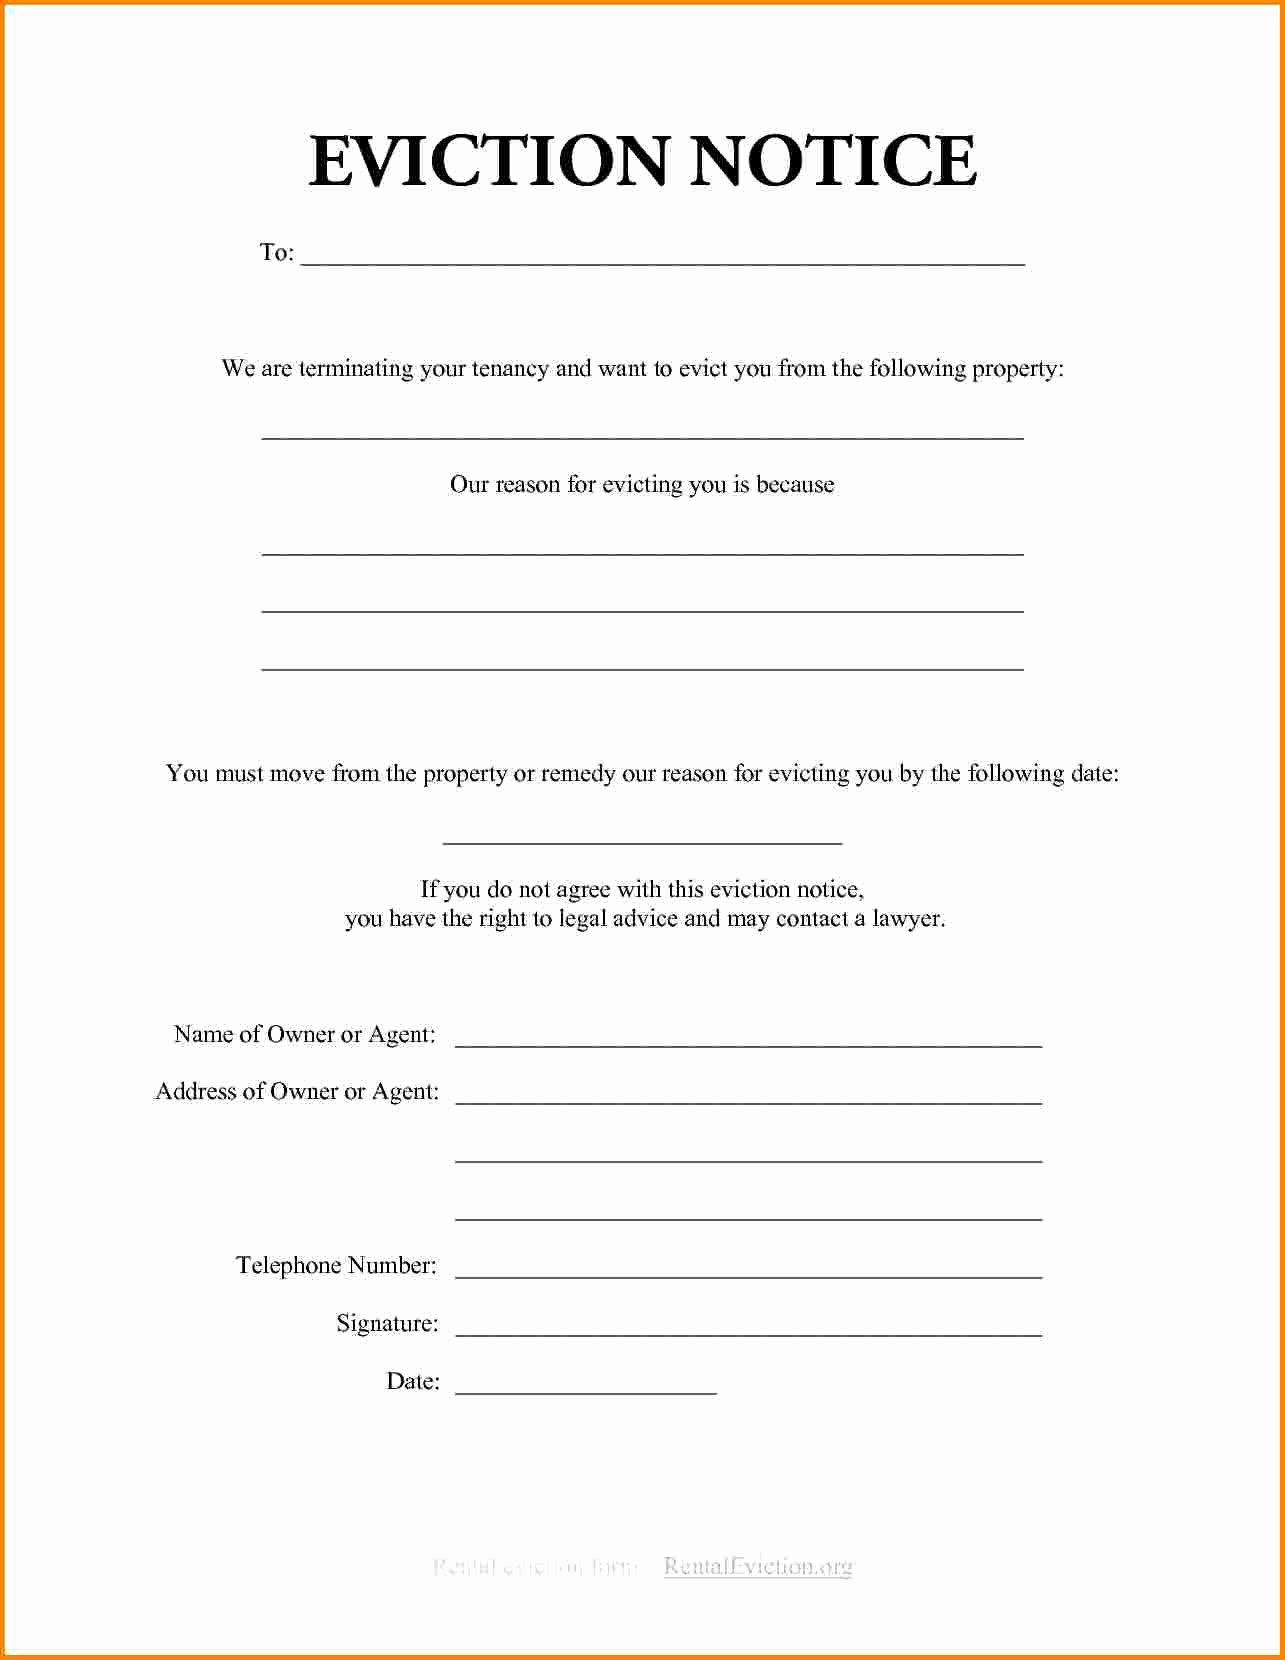 Eviction Notice Template Florida Luxury Eviction Notice Template